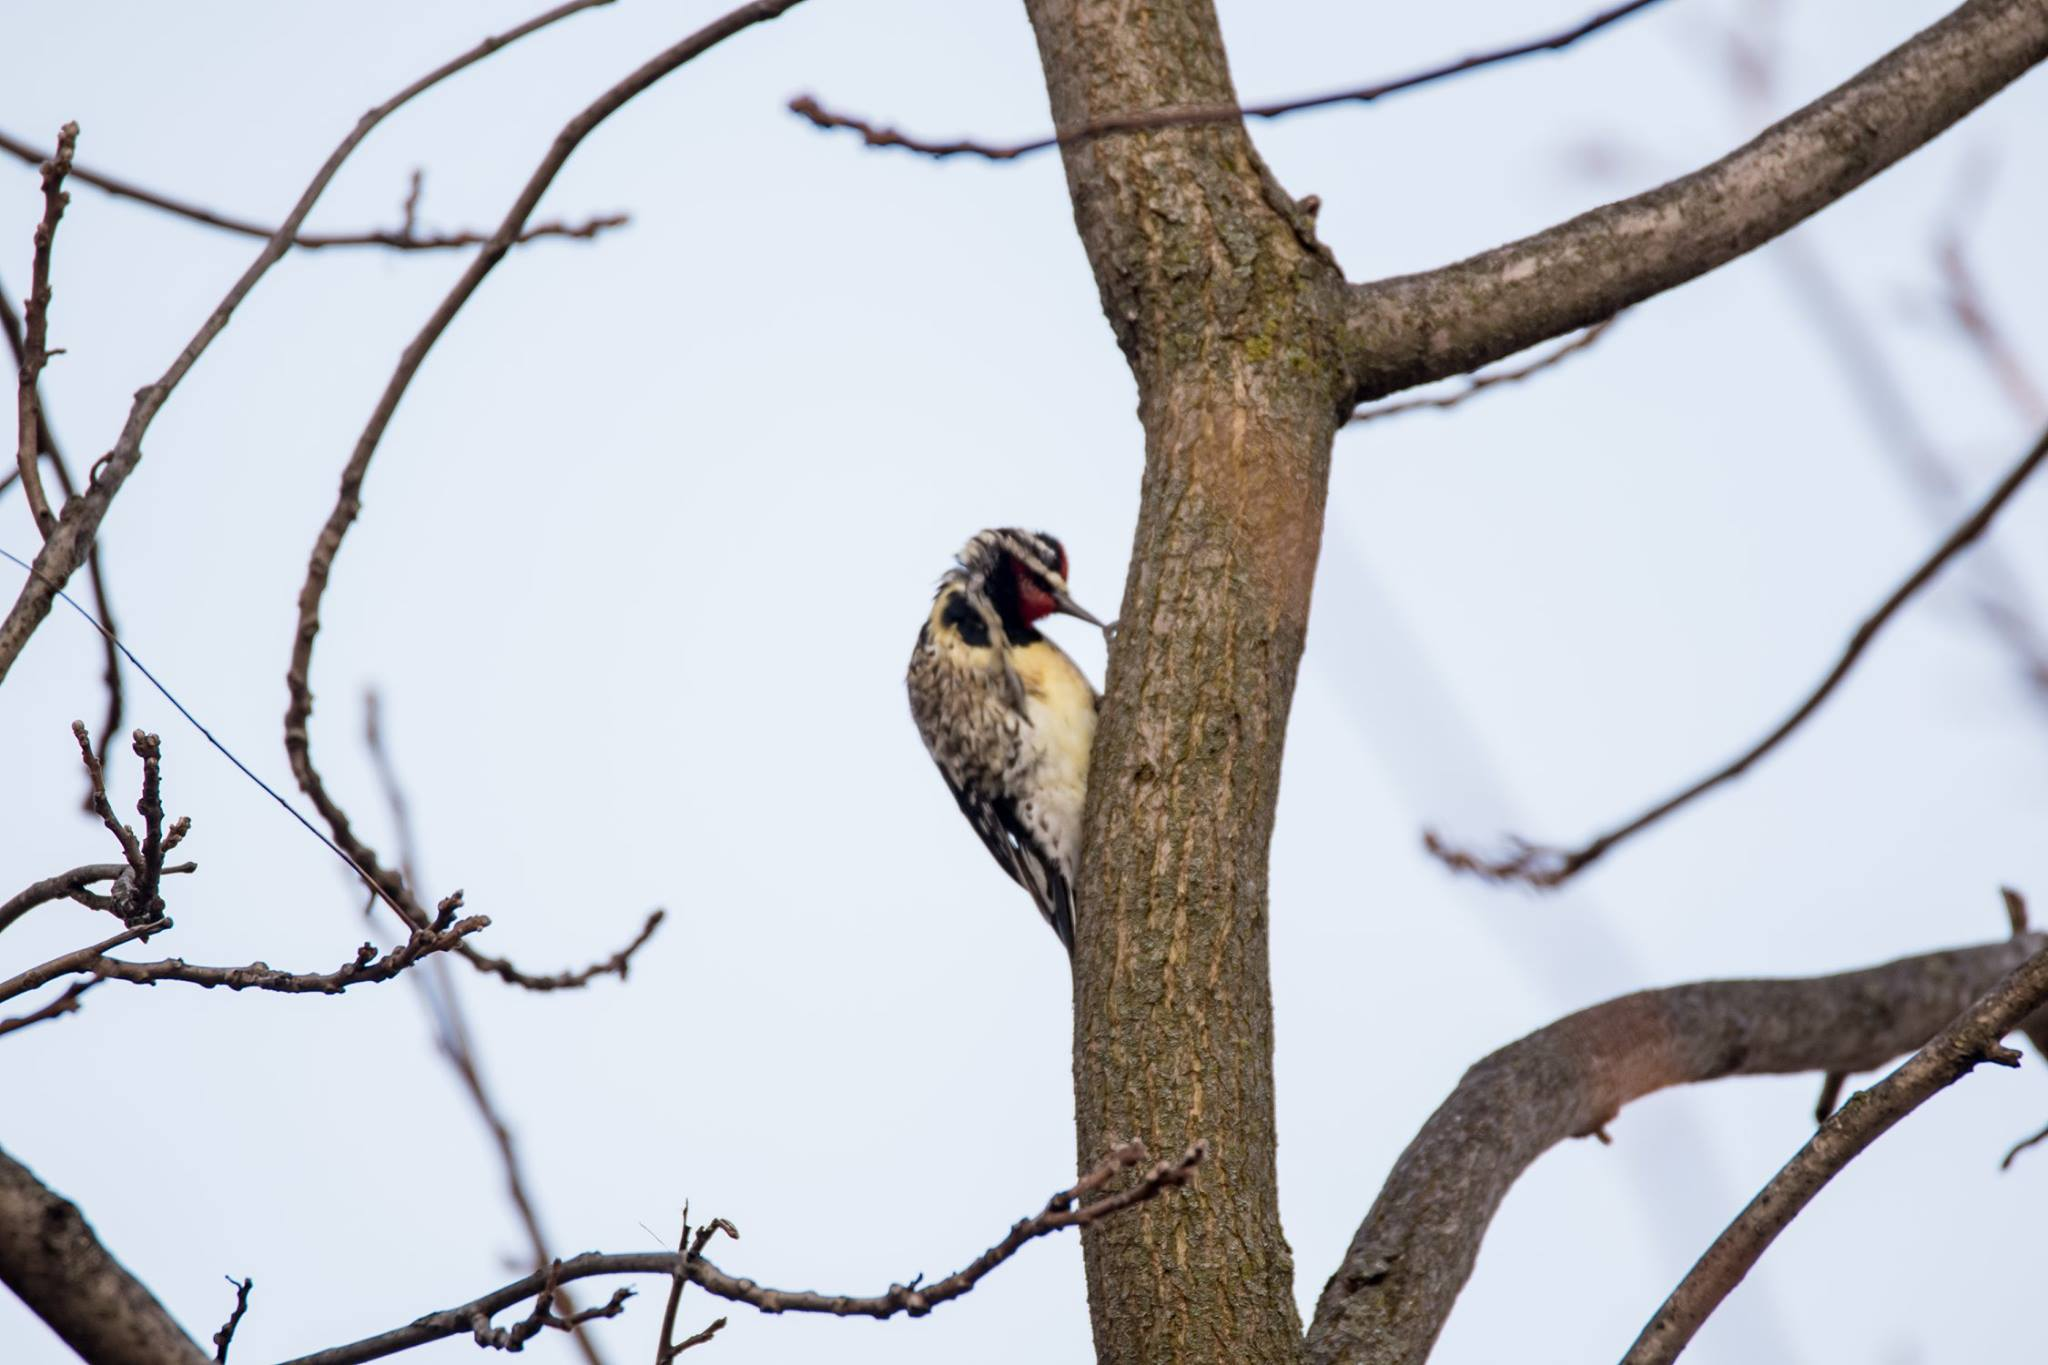 Woodpecker in tree